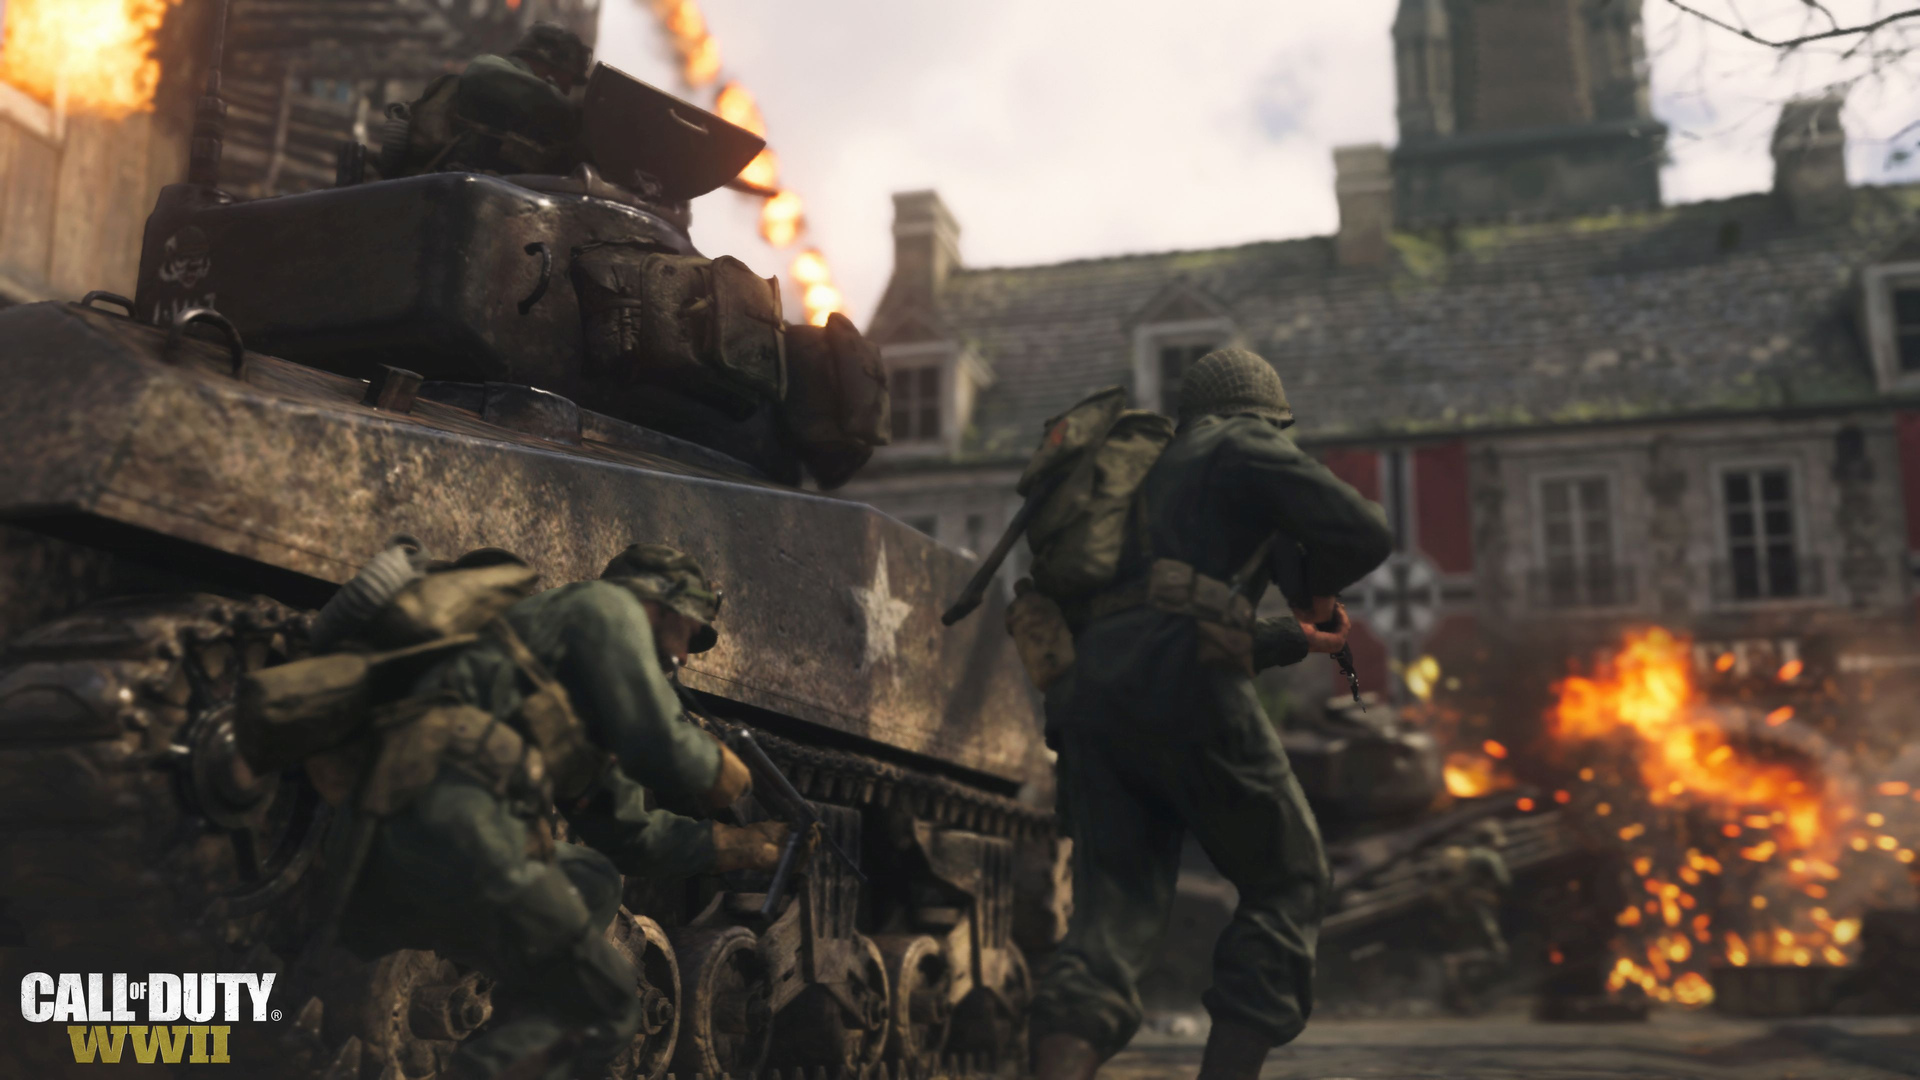 The Second DLC Pack for Call of Duty: WWII Has a Release Date (and Trailer!)